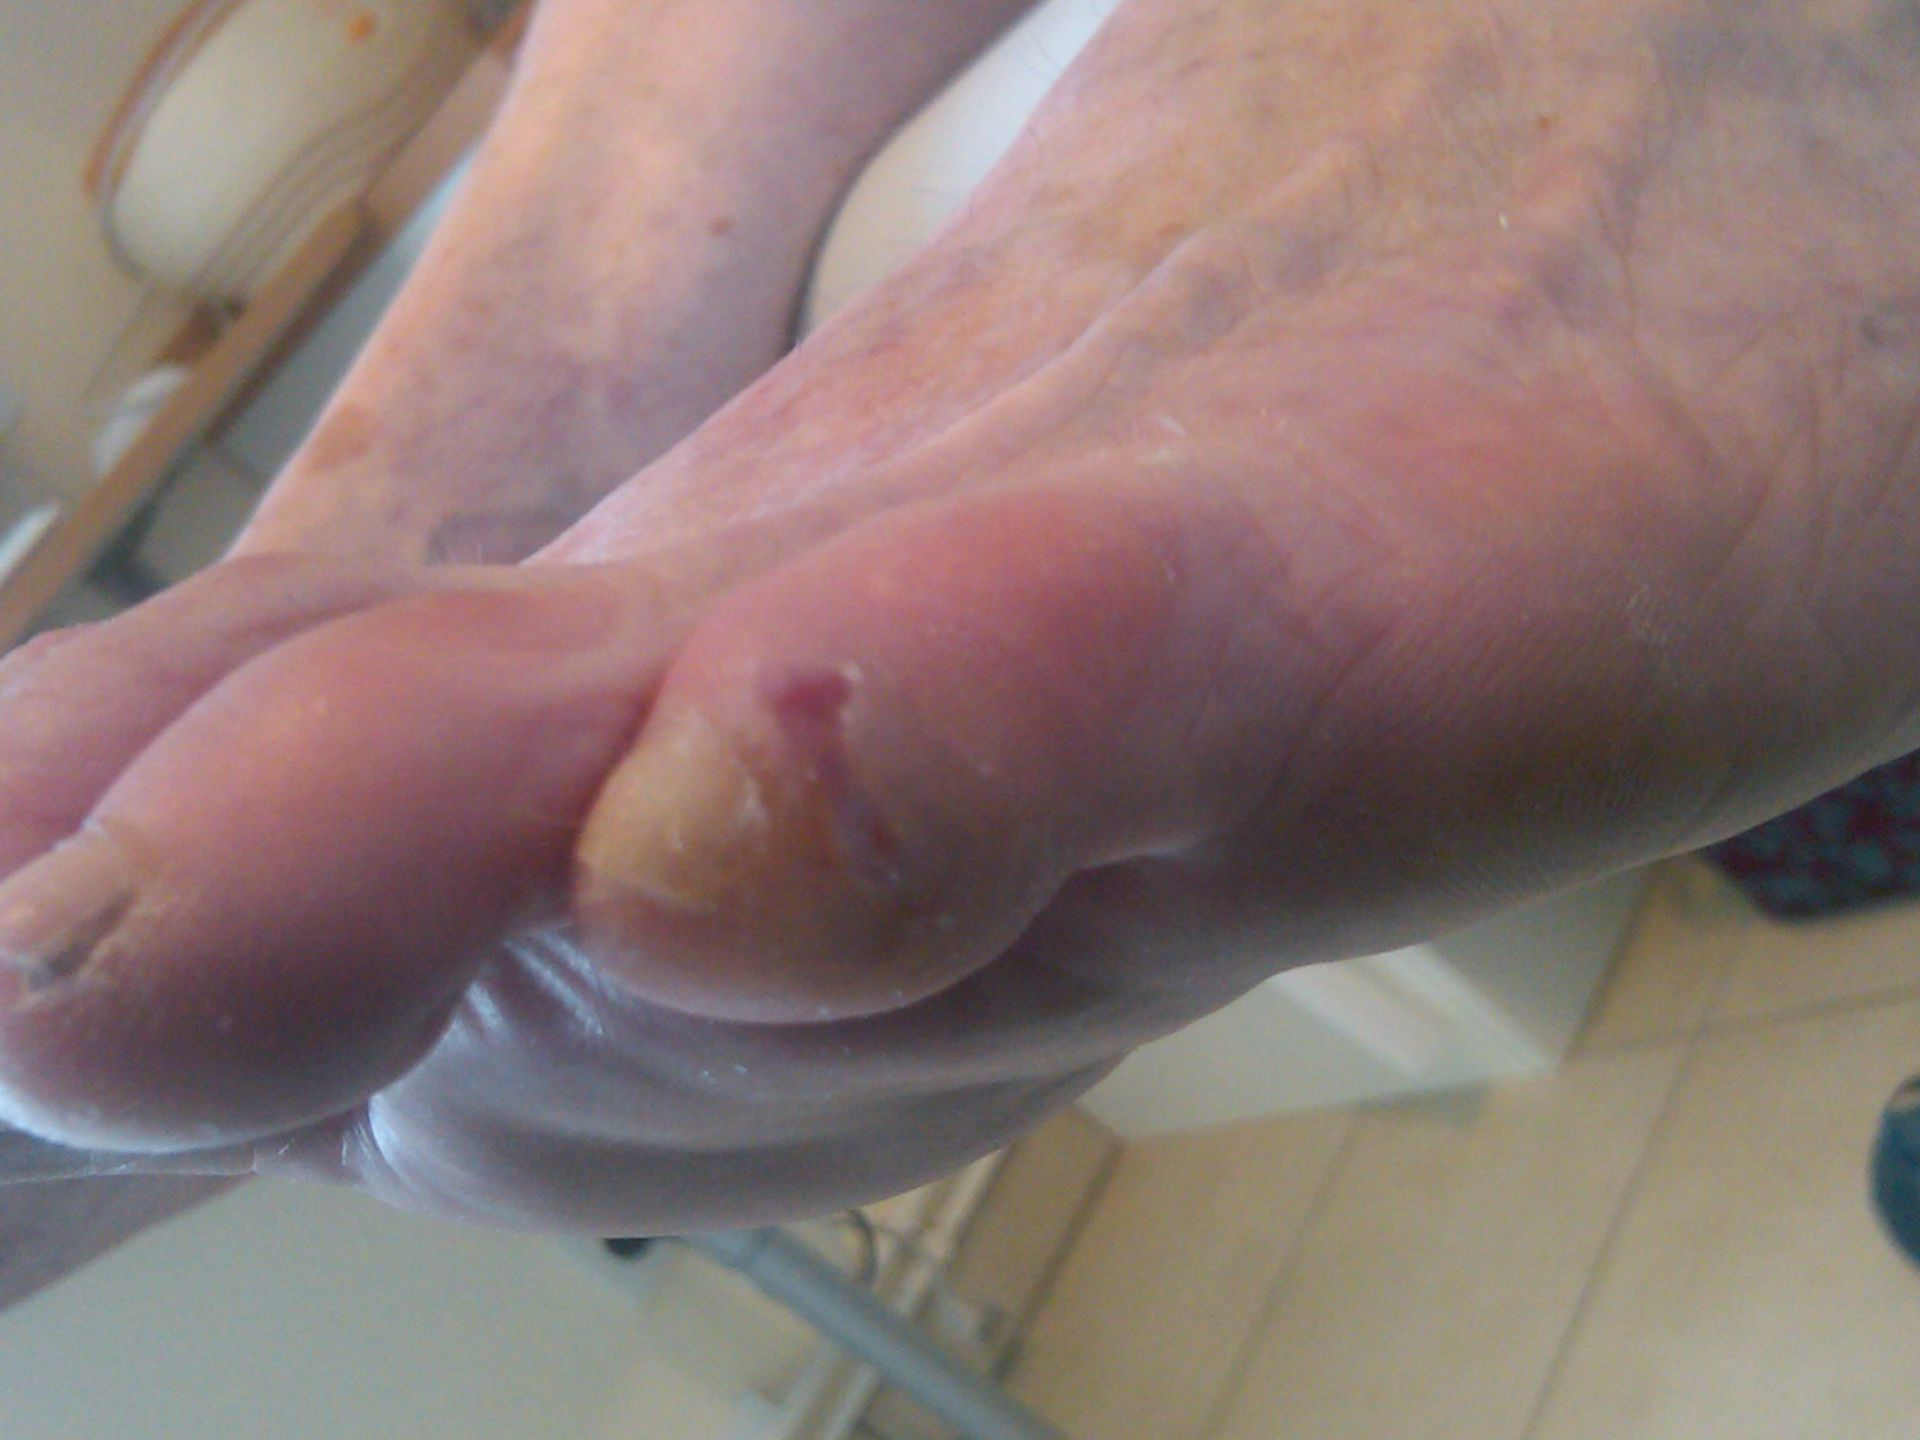 Toe with lesion